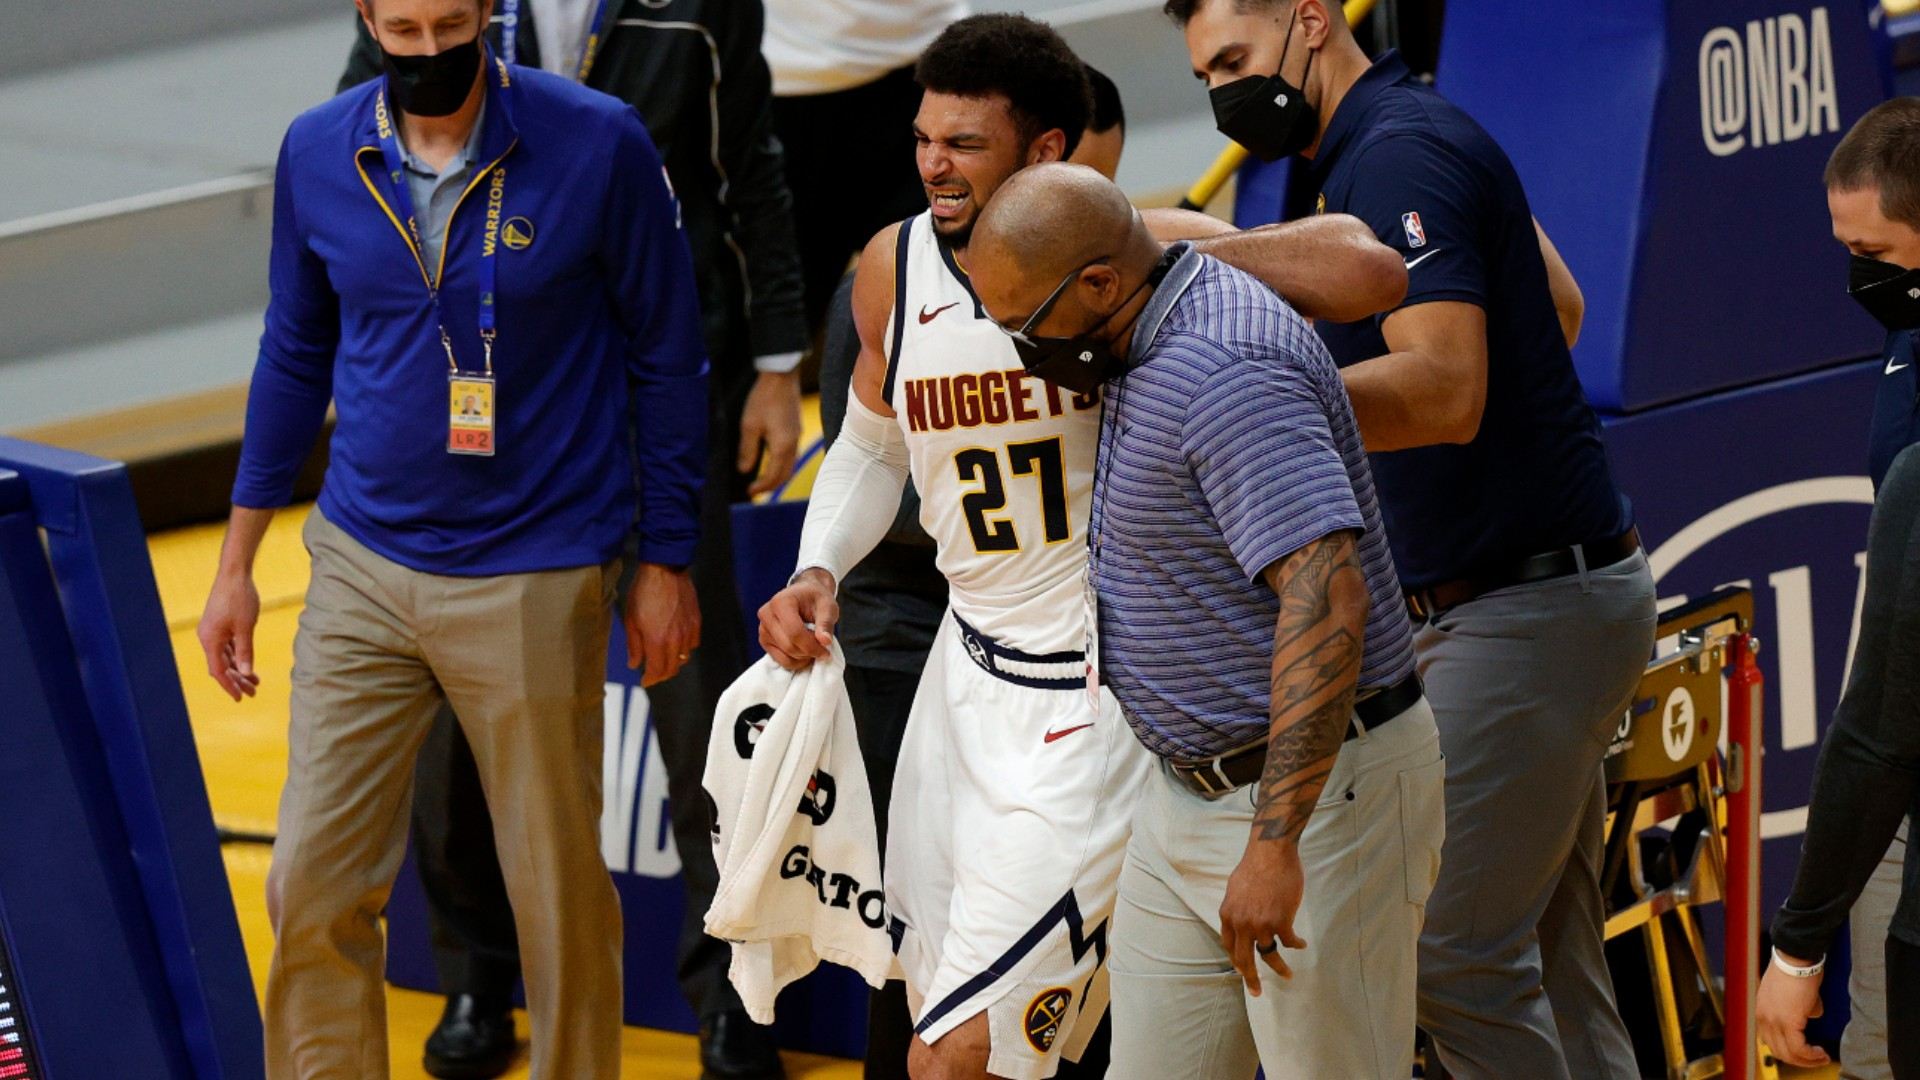 Nuggets star Murray out indefinitely with torn ACL